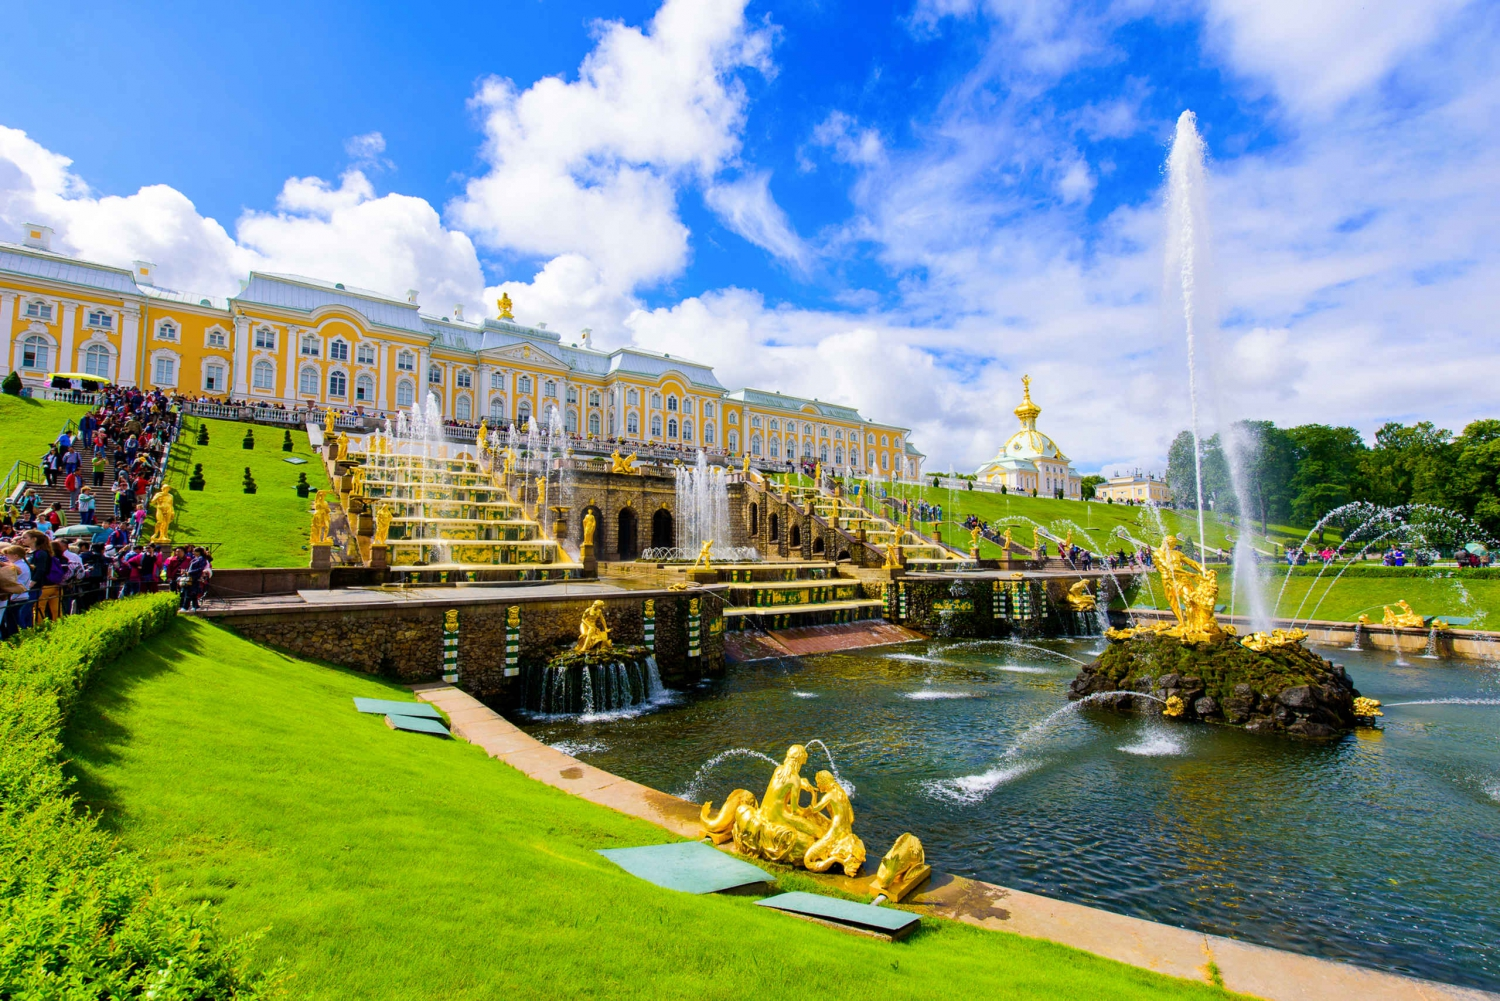 From Peterhof Palace and Gardens Day Tour